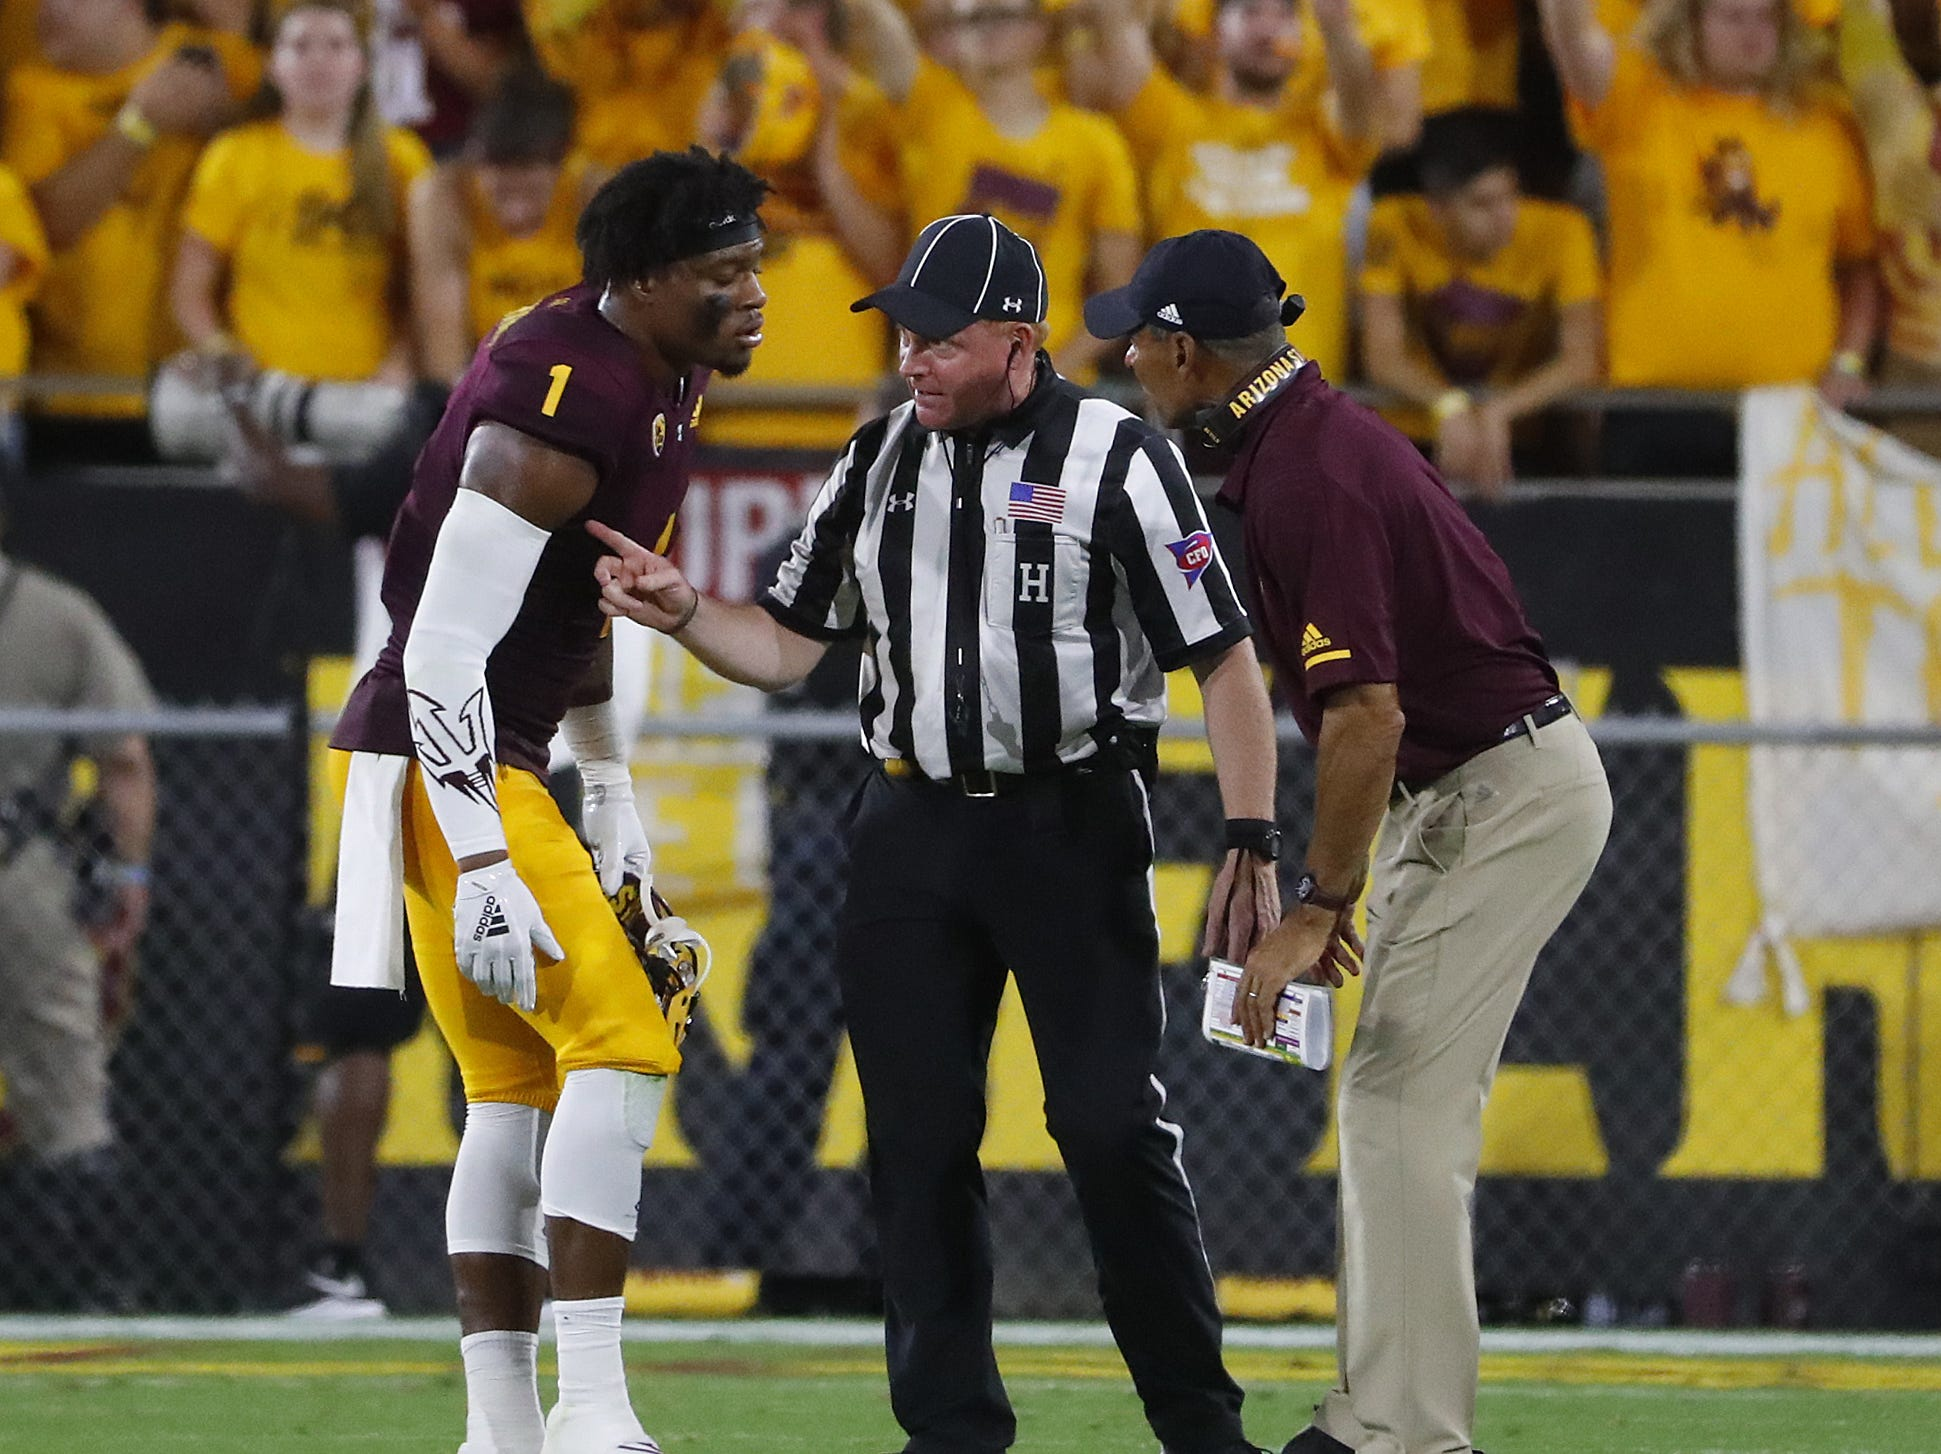 Arizona State Sun Devils wide receiver N'Keal Harry (1) and head coach Herm Edwards talk to an official during the first half at Sun Devil Stadium in Tempe, Ariz. on Sept. 1, 2018.